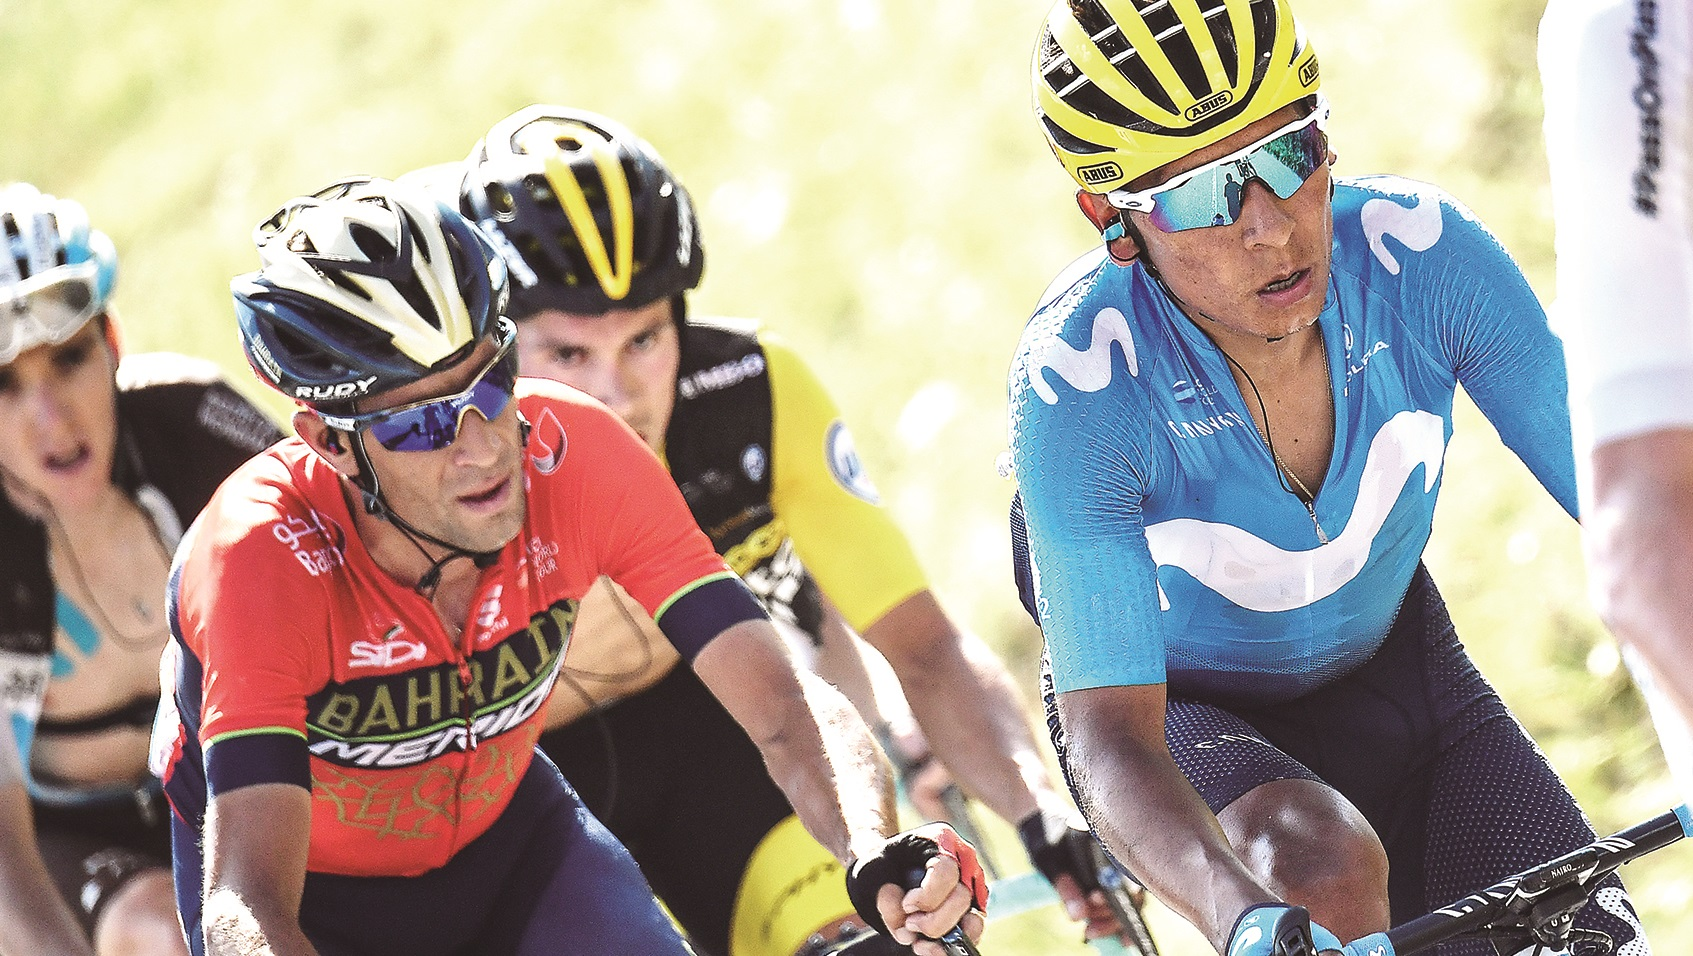 Colombia's Nairo Quintana (C) rides in a counter attack group during the last ascend of the eleventh stage of the 105th edition of the Tour de France cycling race between Albertville and La Rosiere, French Alps, on July 18, 2018.  / AFP PHOTO / Jeff PACHOUD